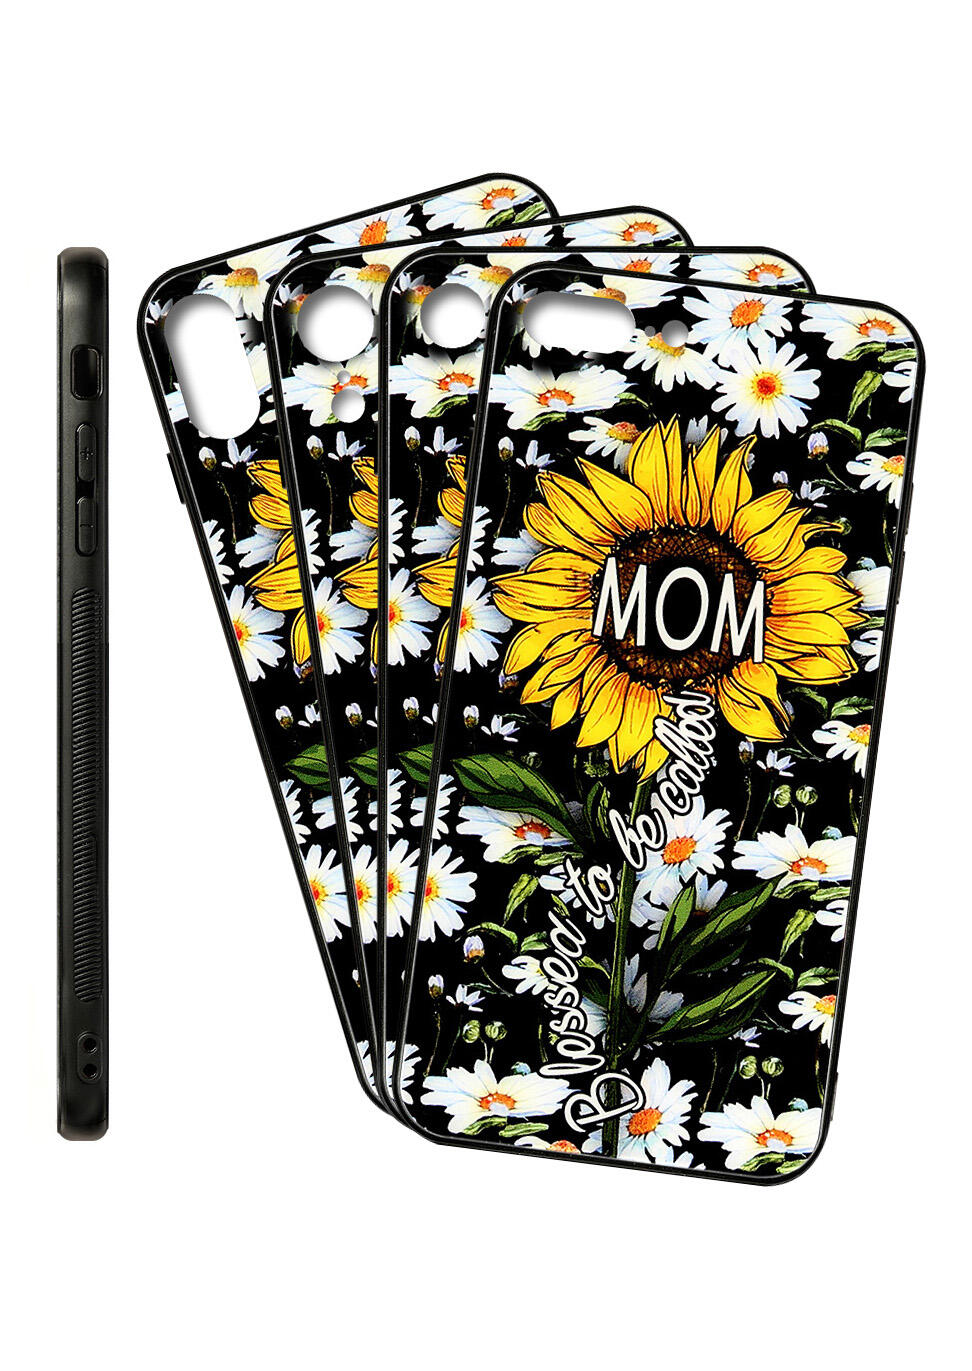 Sunflower Blessed To Be Called Mom Iphone XR / Iphone XS Max / Iphone 8 / Iphone 8 Silicone Protective Phone Case фото